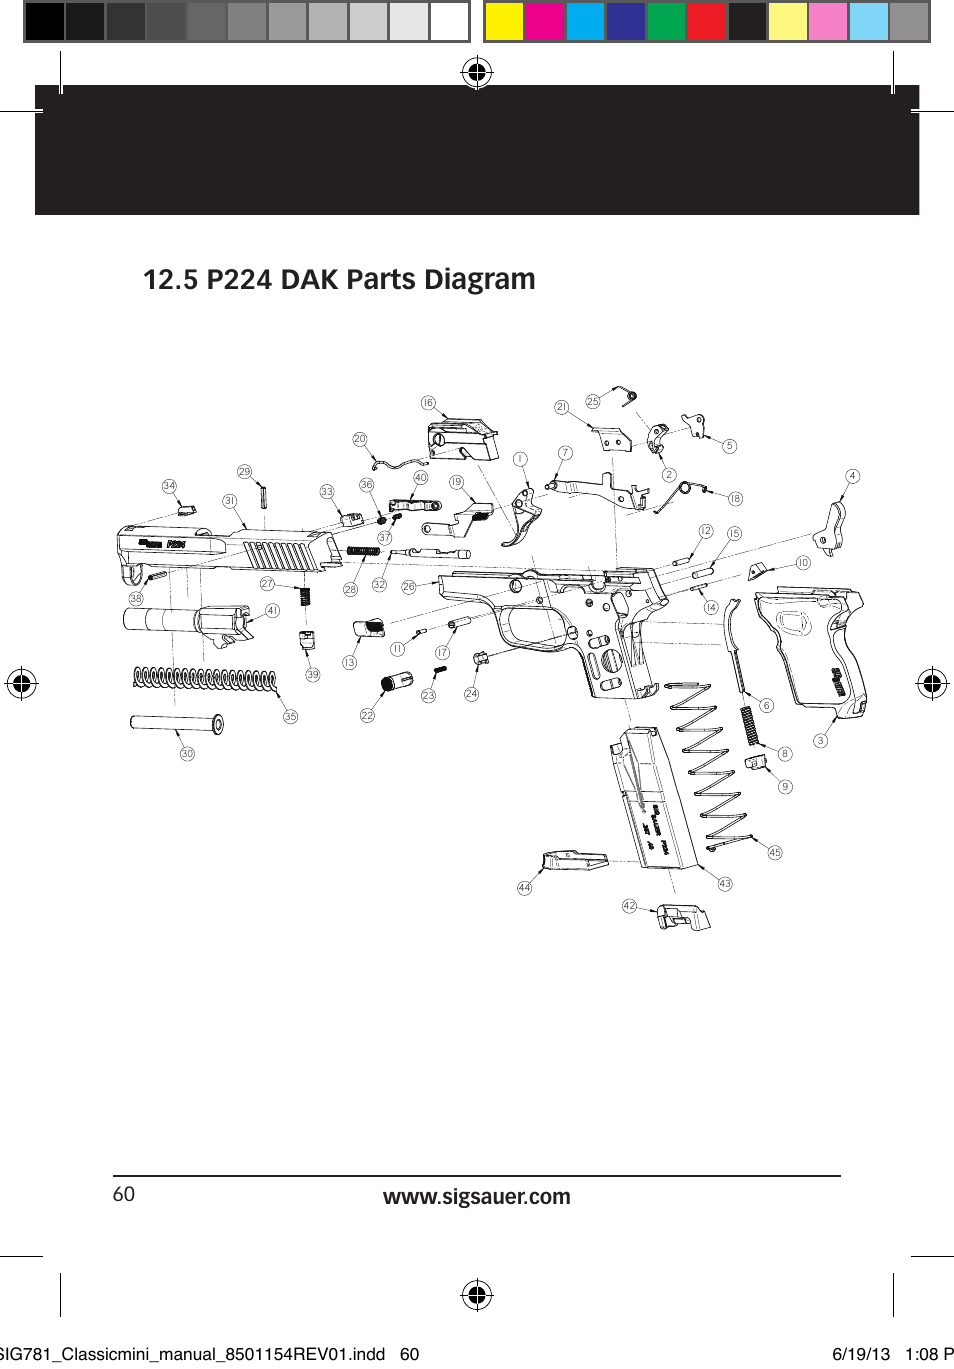 Exploded Diagram Of A 1911 Pistol